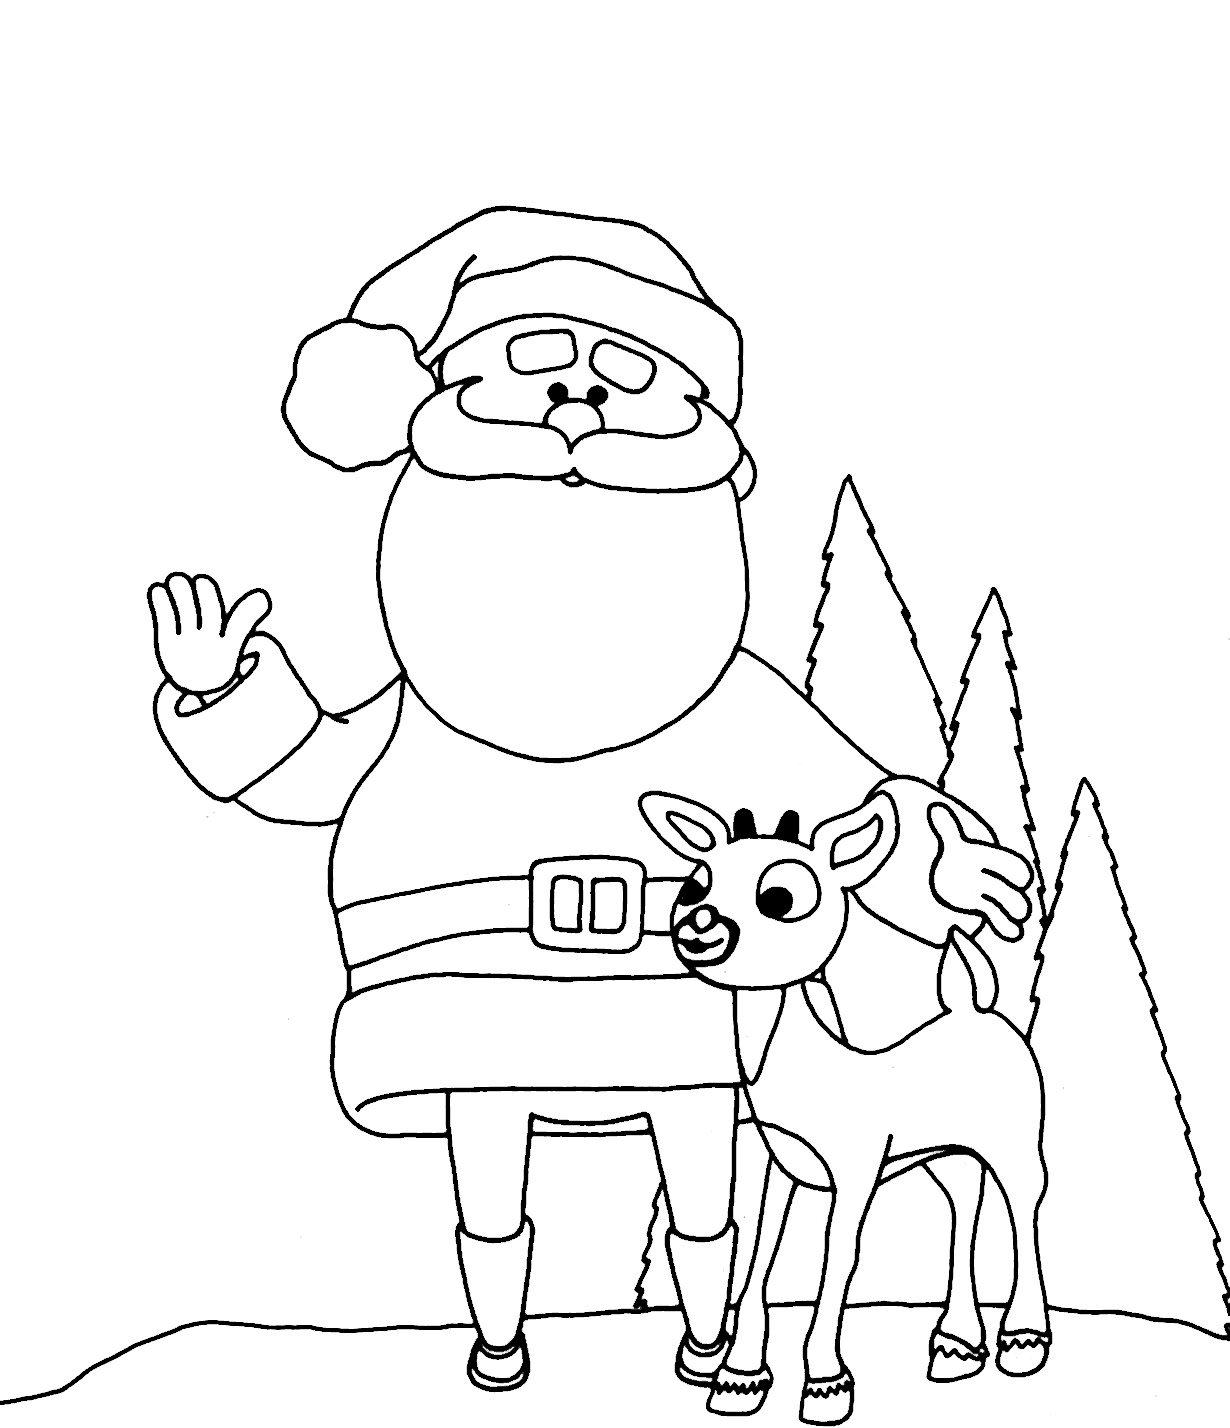 Santa Free Coloring Pages With Lovely Printable Reindeer For Kids